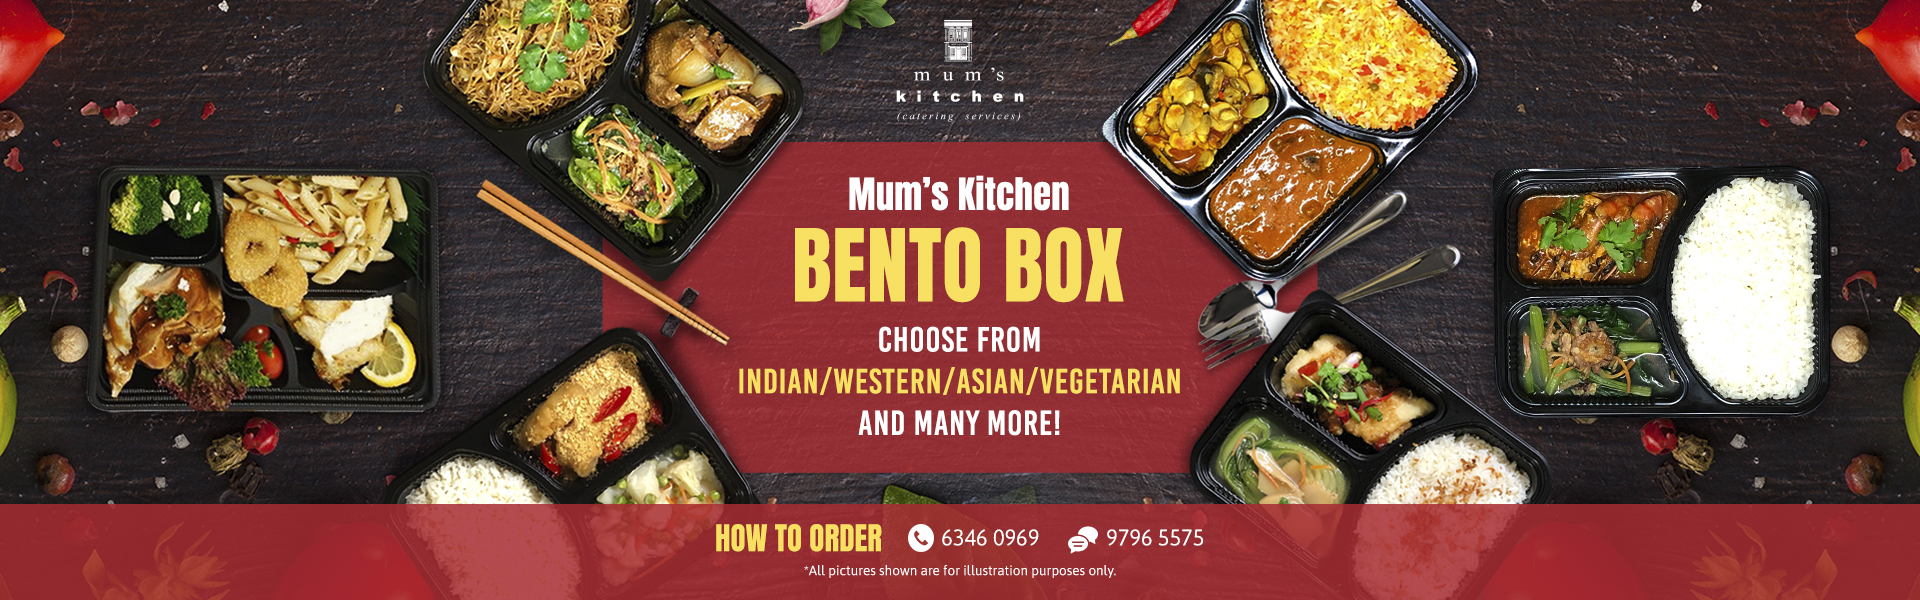 https://www.mumskitchen.com.sg/image/catalog/HomePage Banner Slider/mk-bentobox-desktopweb.jpg